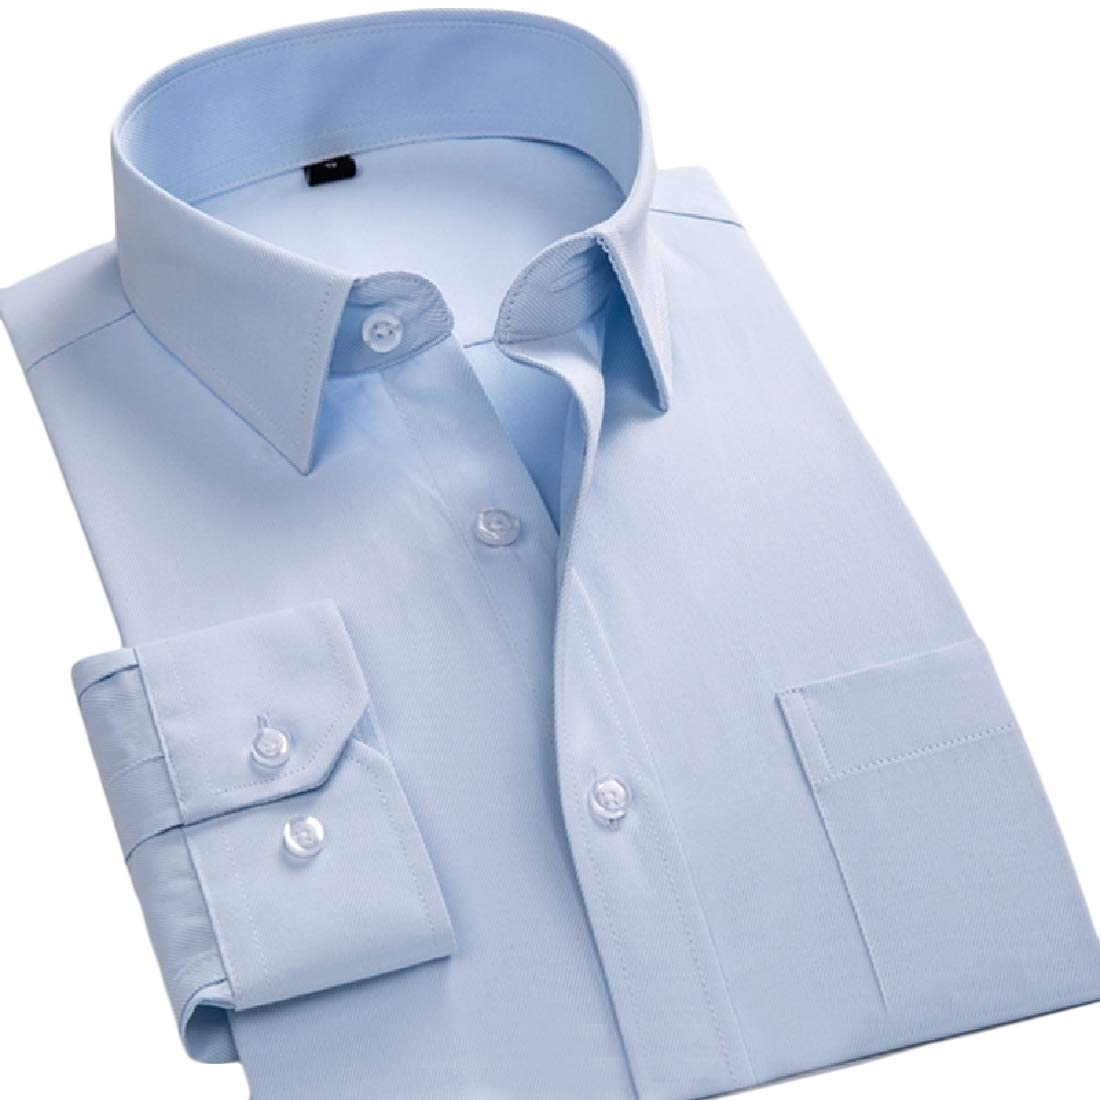 Winwinus Mens Formal Cotton Solid Office Premium Comfort Business Collared Dress Shirts 11 XL